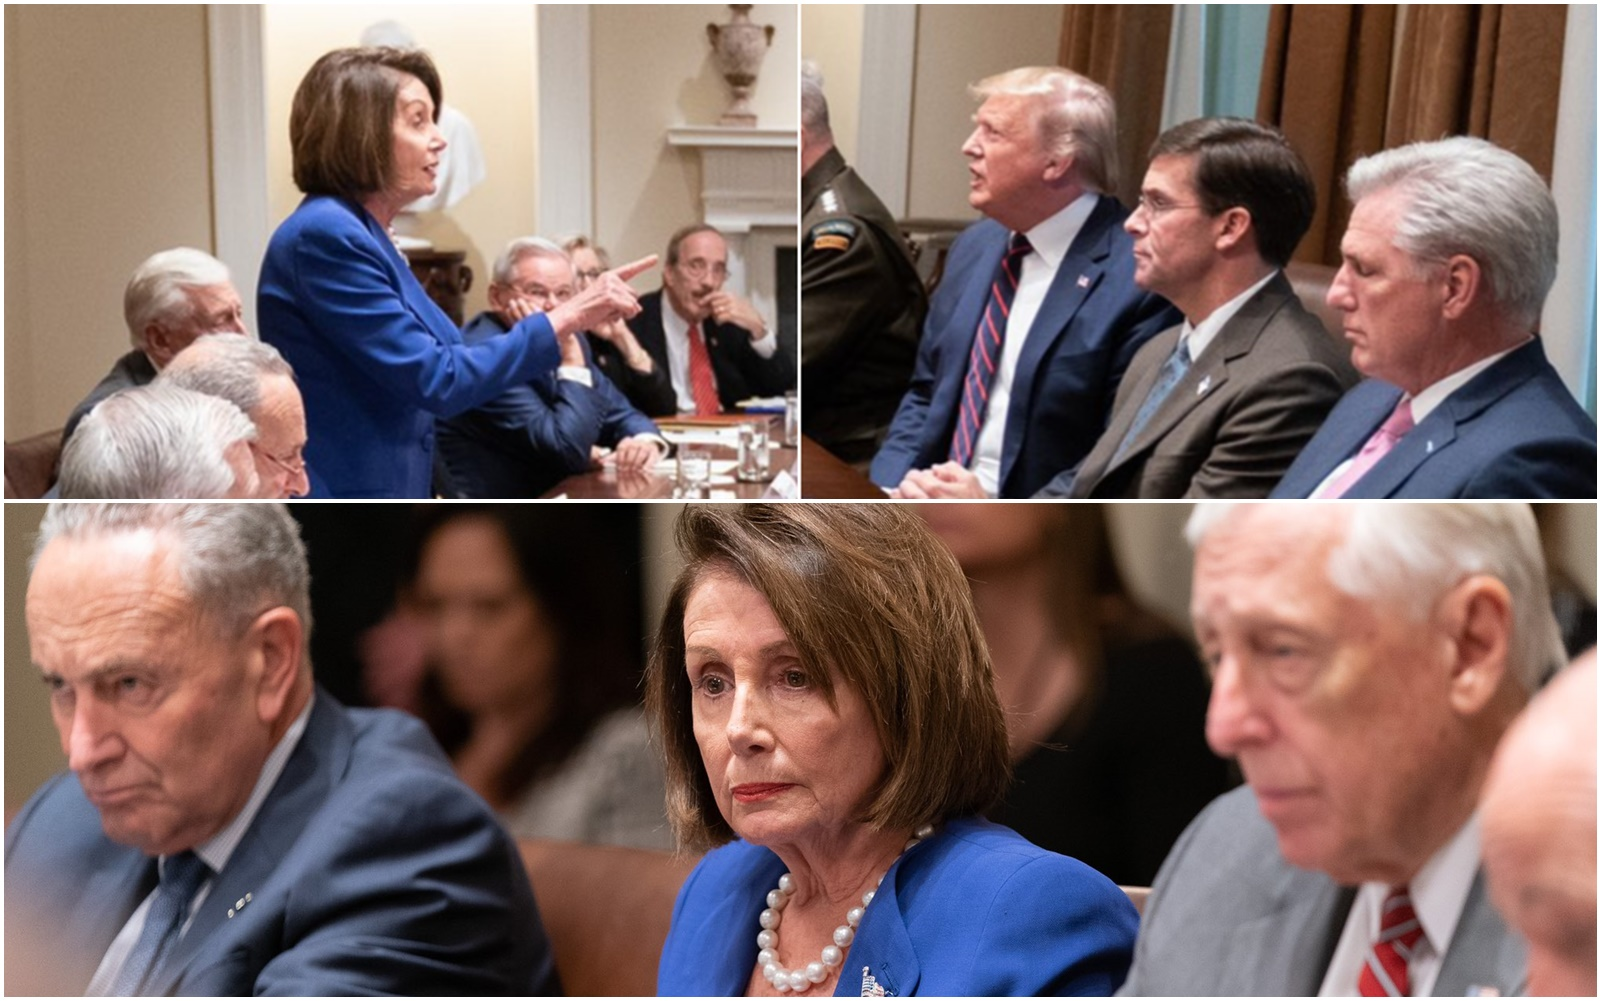 Pelosi Accuses Trump of a Meltdown, Trump Accuses Pelosi of a Meltdown. And Now, Let The Trolling Begin